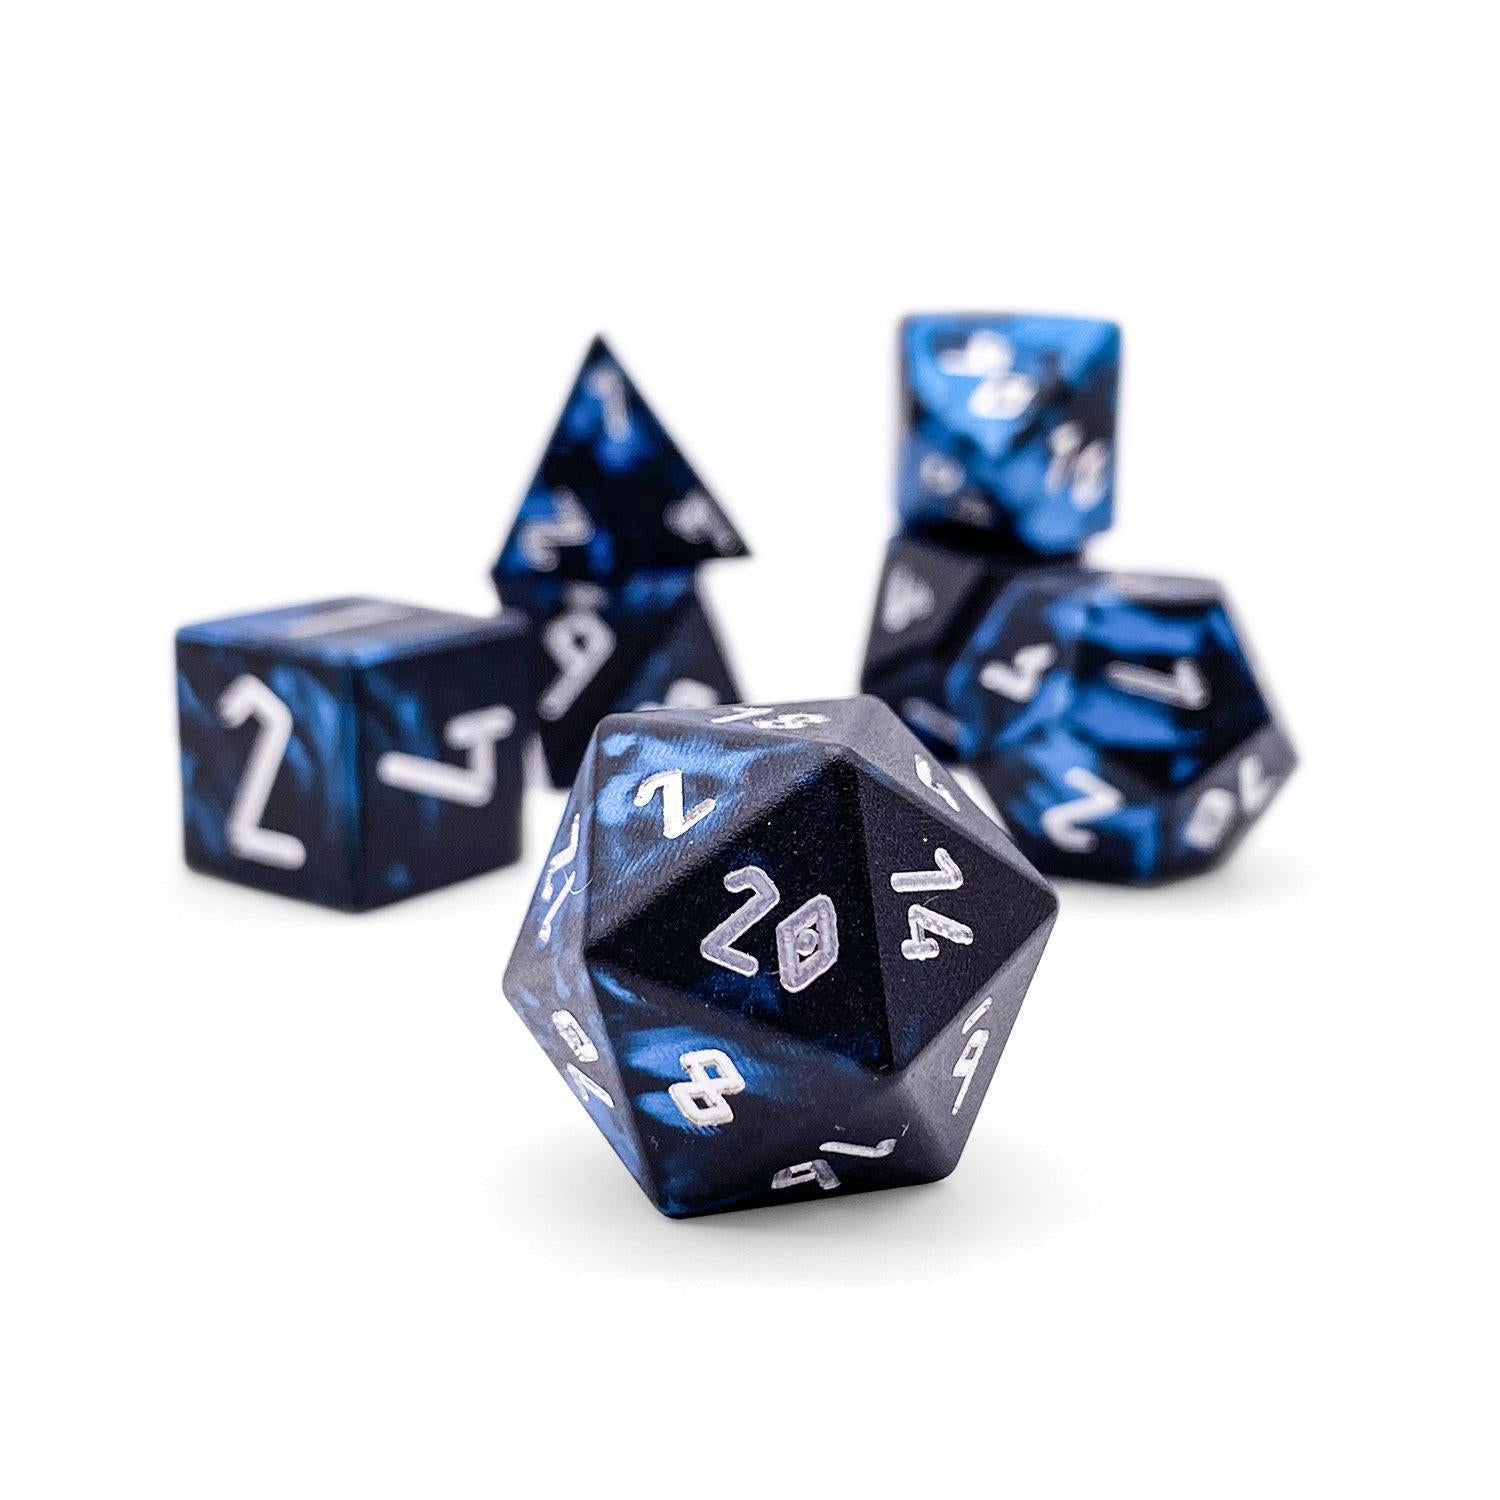 Norse Foundry Dice – A dice set worthy of royalty discover the most essential gaming accessories available.